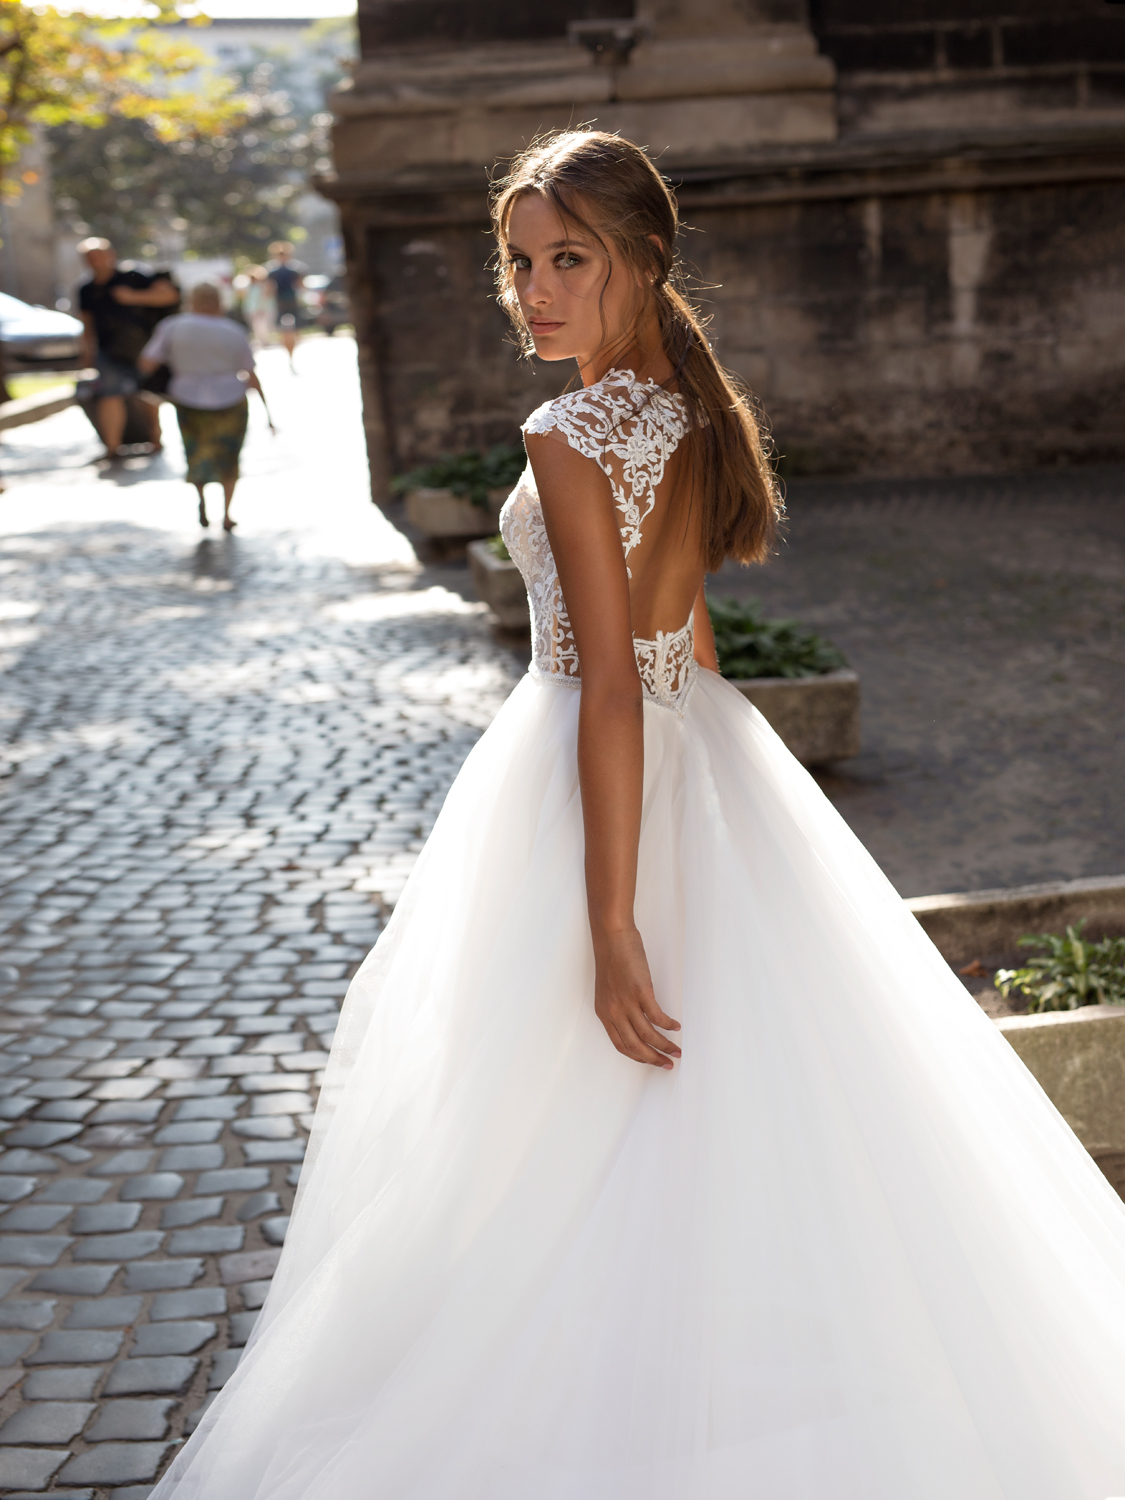 liri_designer_Wedding_Dress_Lydia+detail.jpg